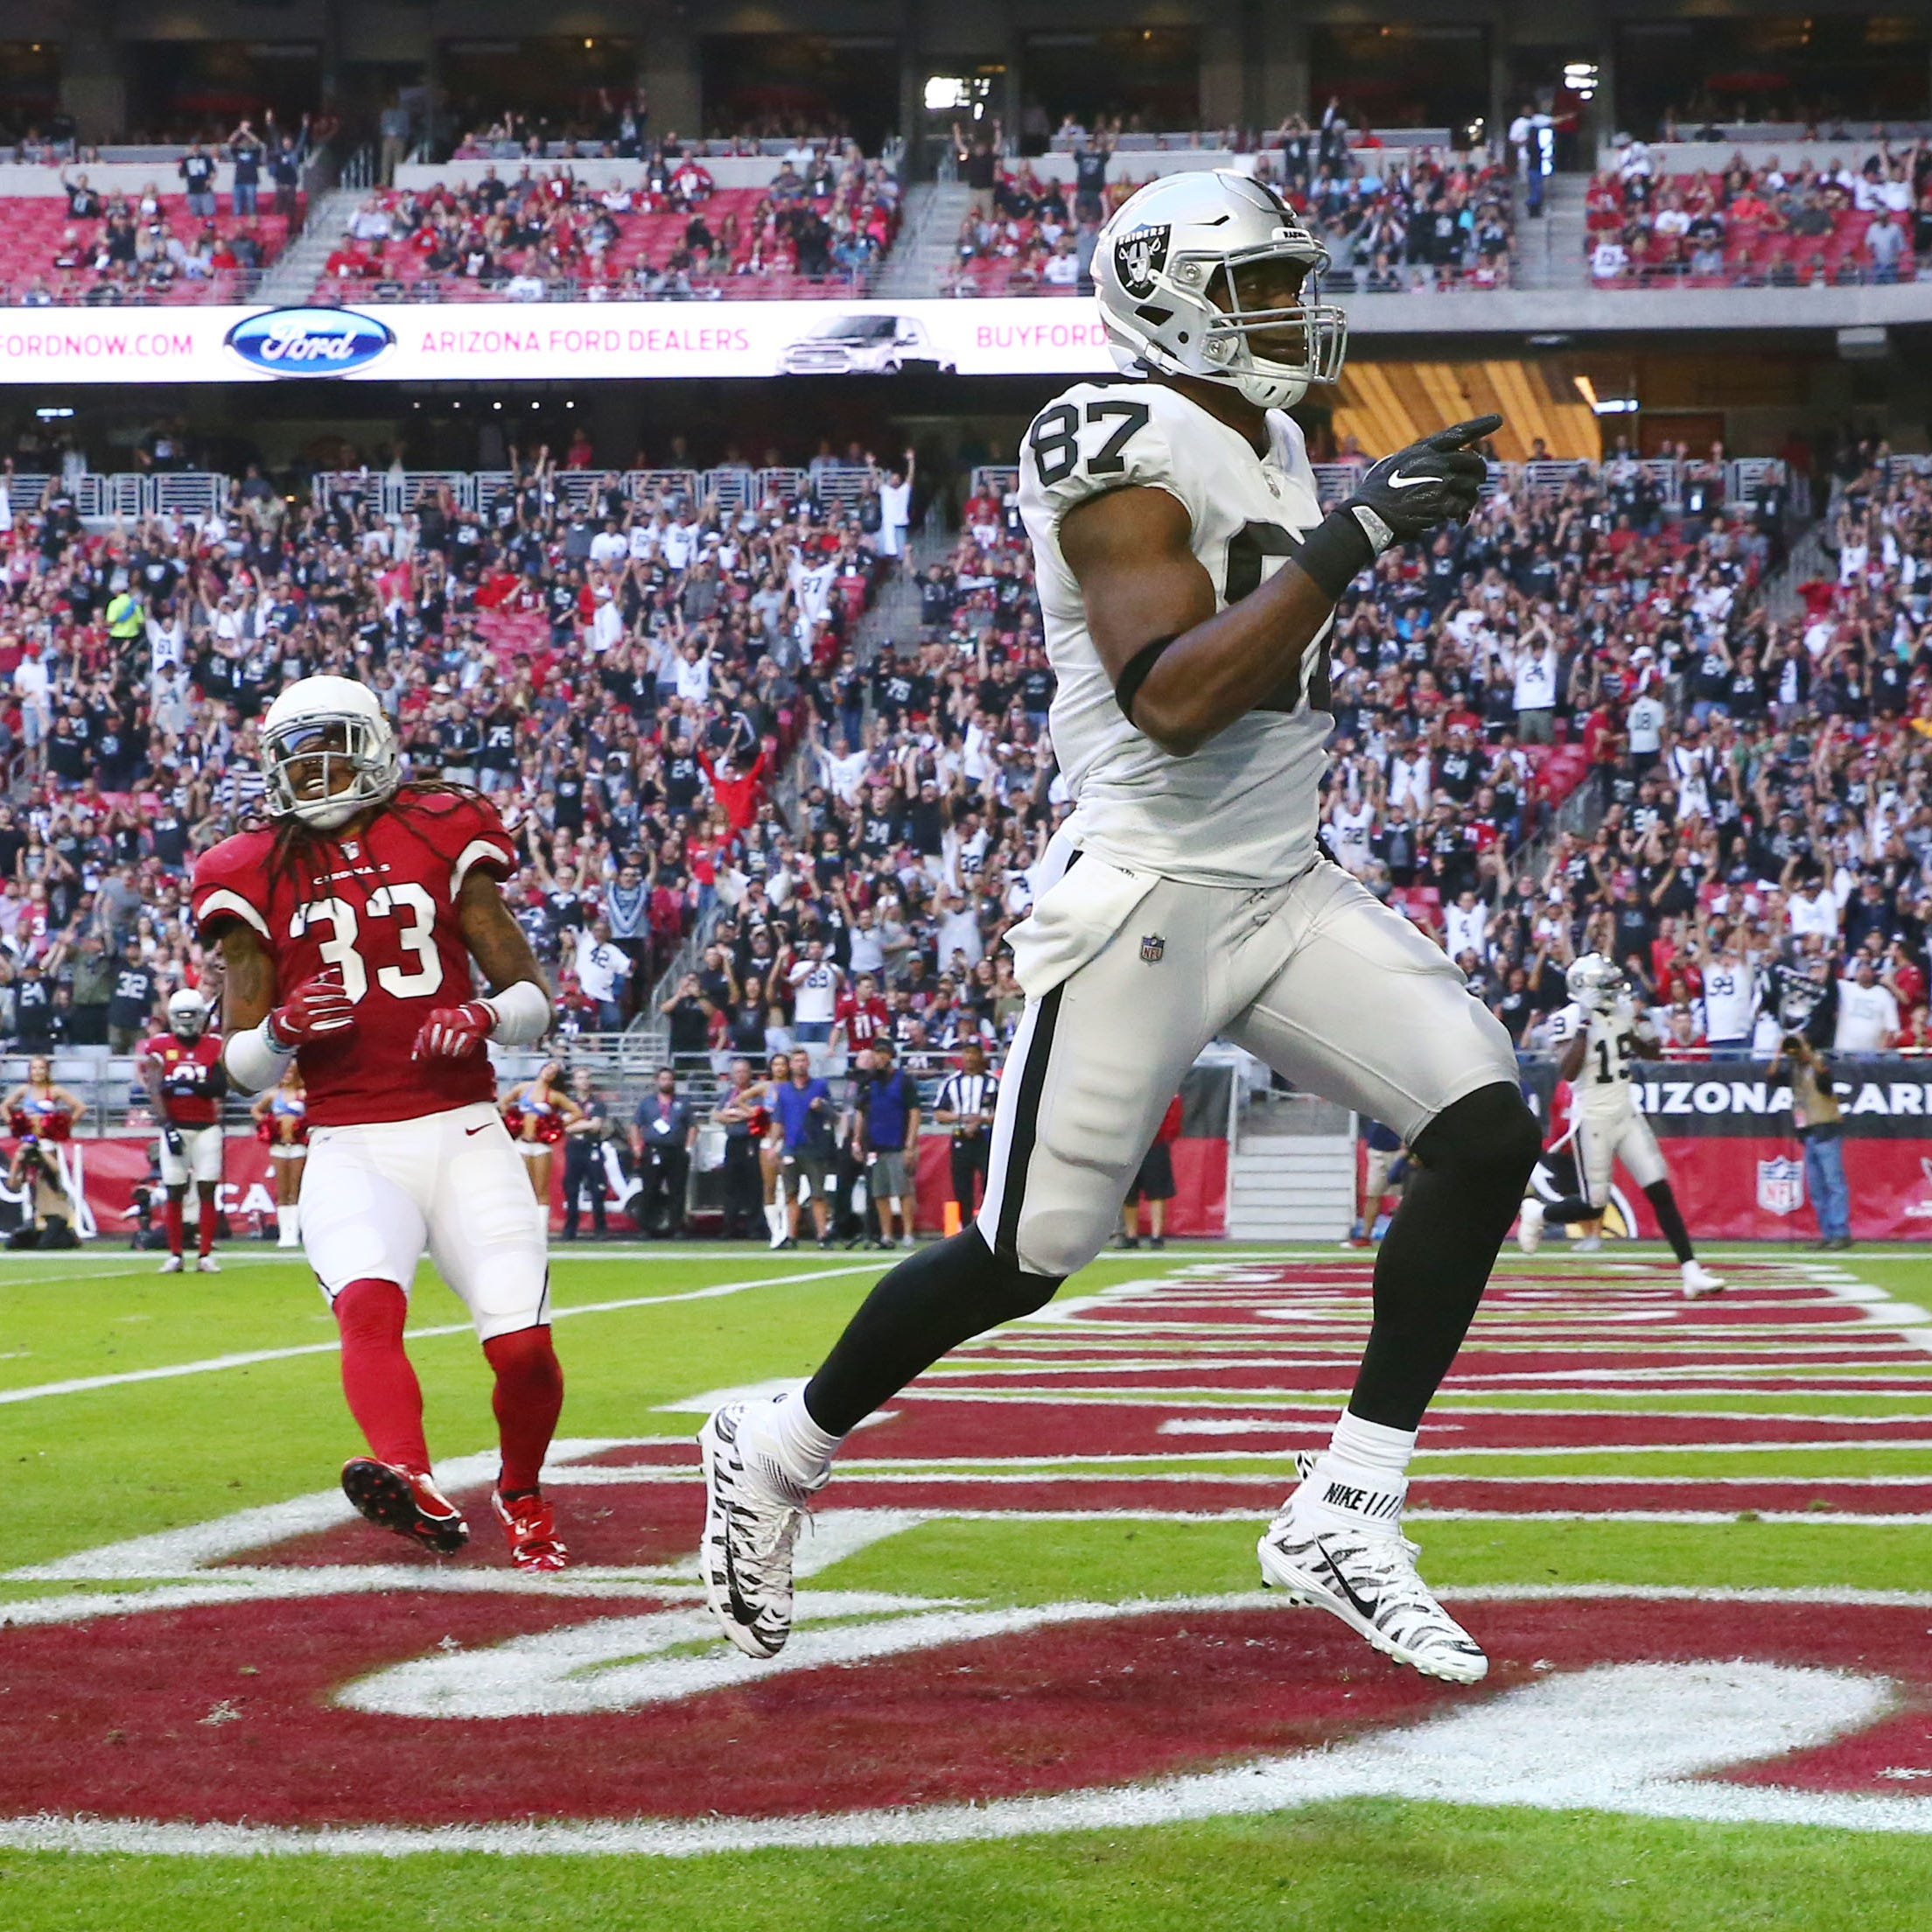 Instant replay: Cardinals lose to Raiders on last-second field goal